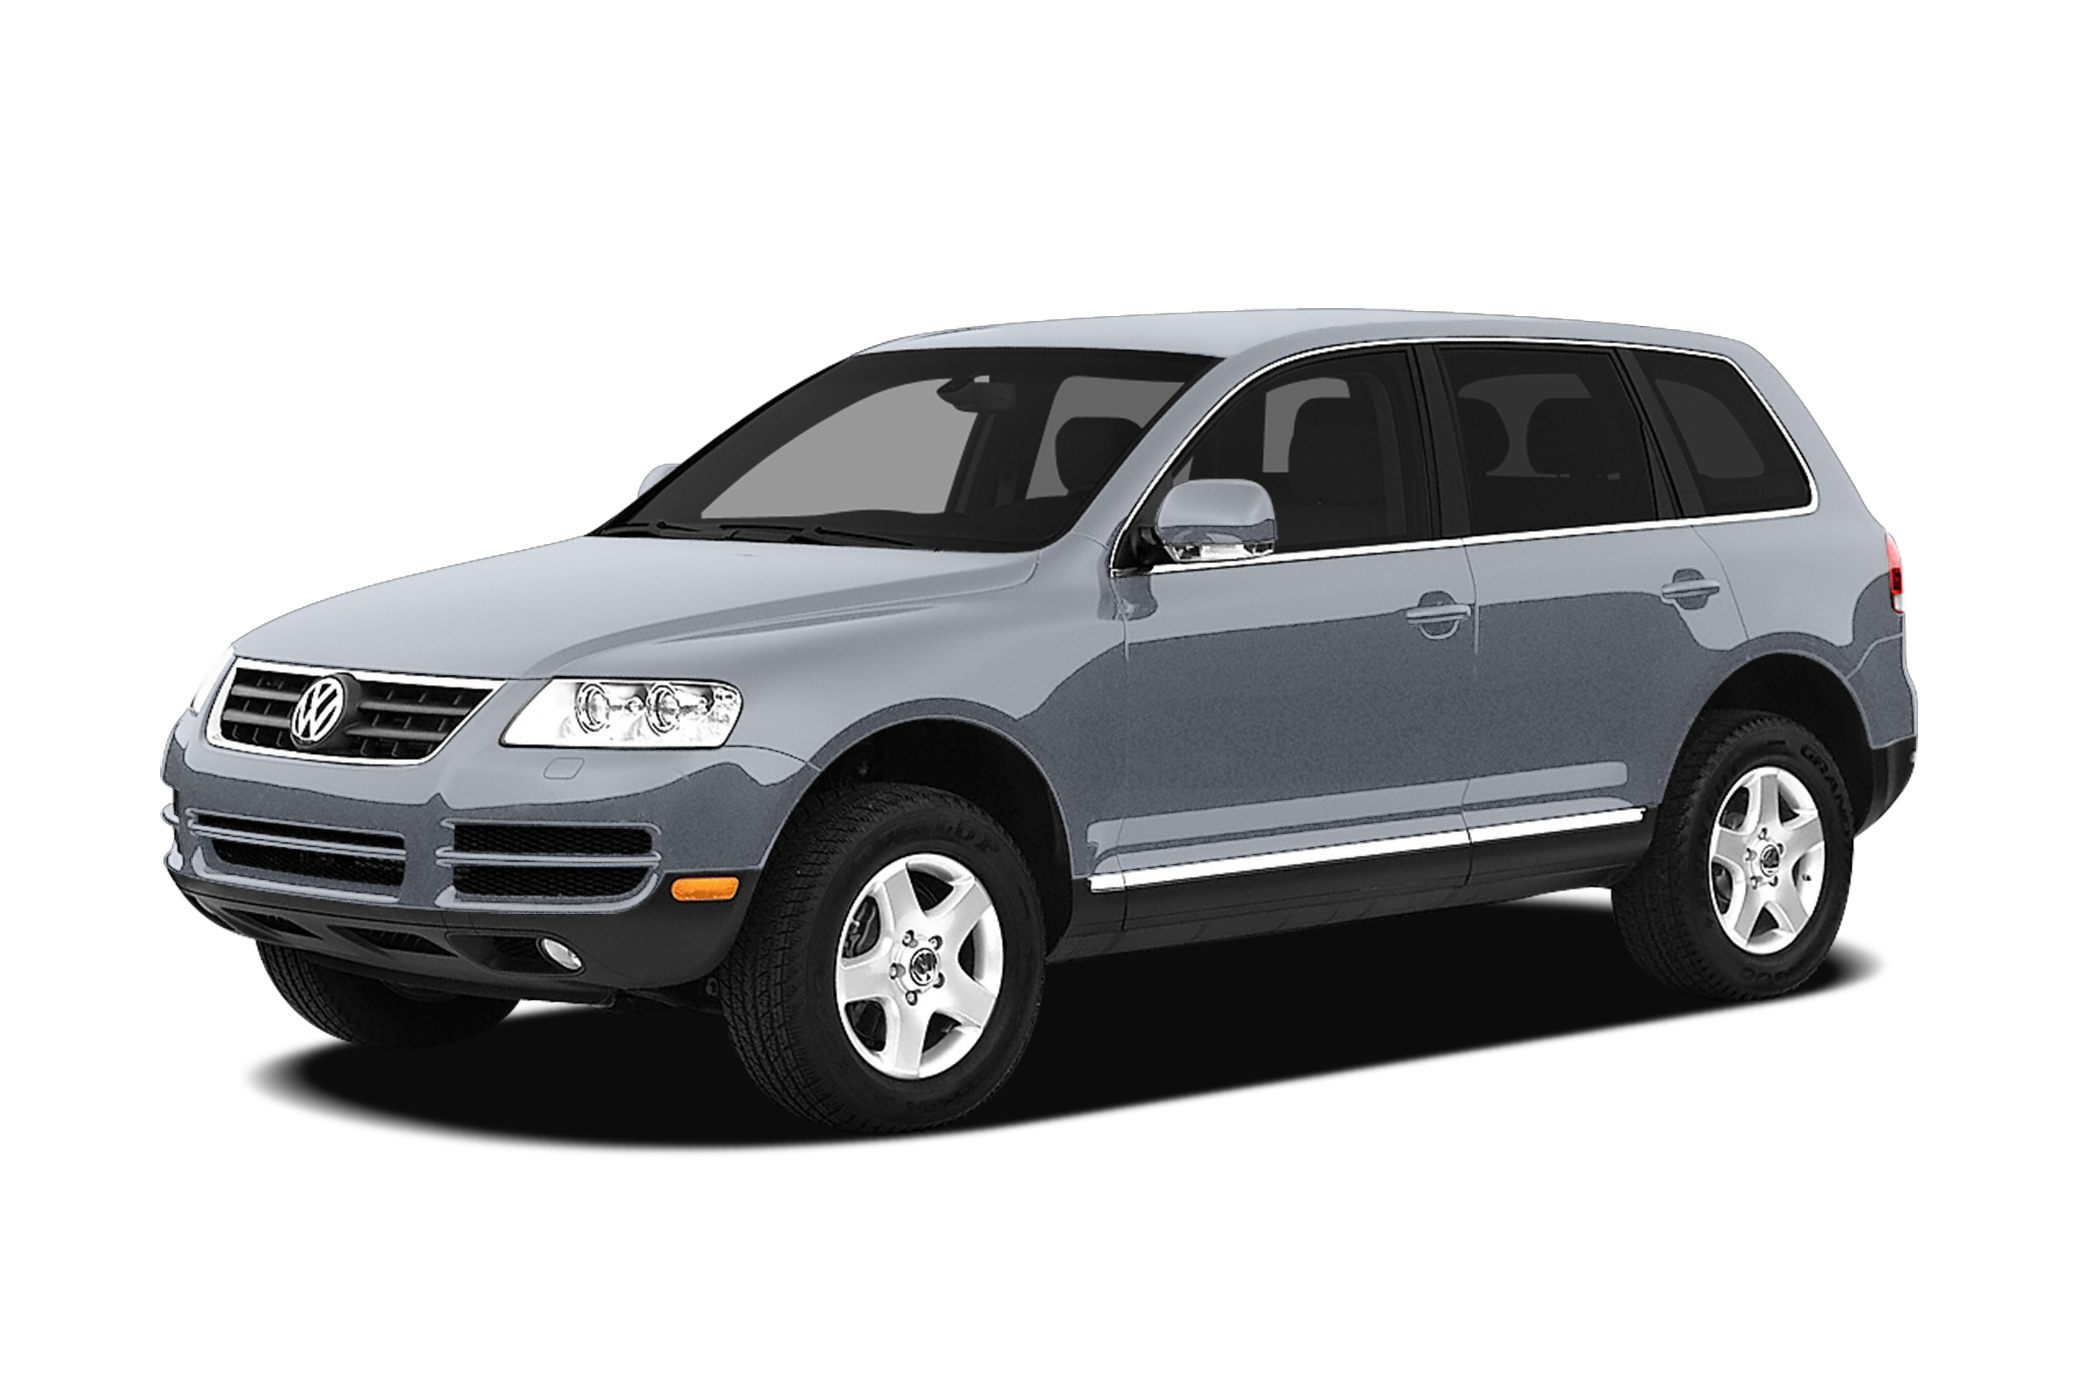 2007 Volkswagen Touareg V10 Tdi 4dr All Wheel Drive Specs And Prices